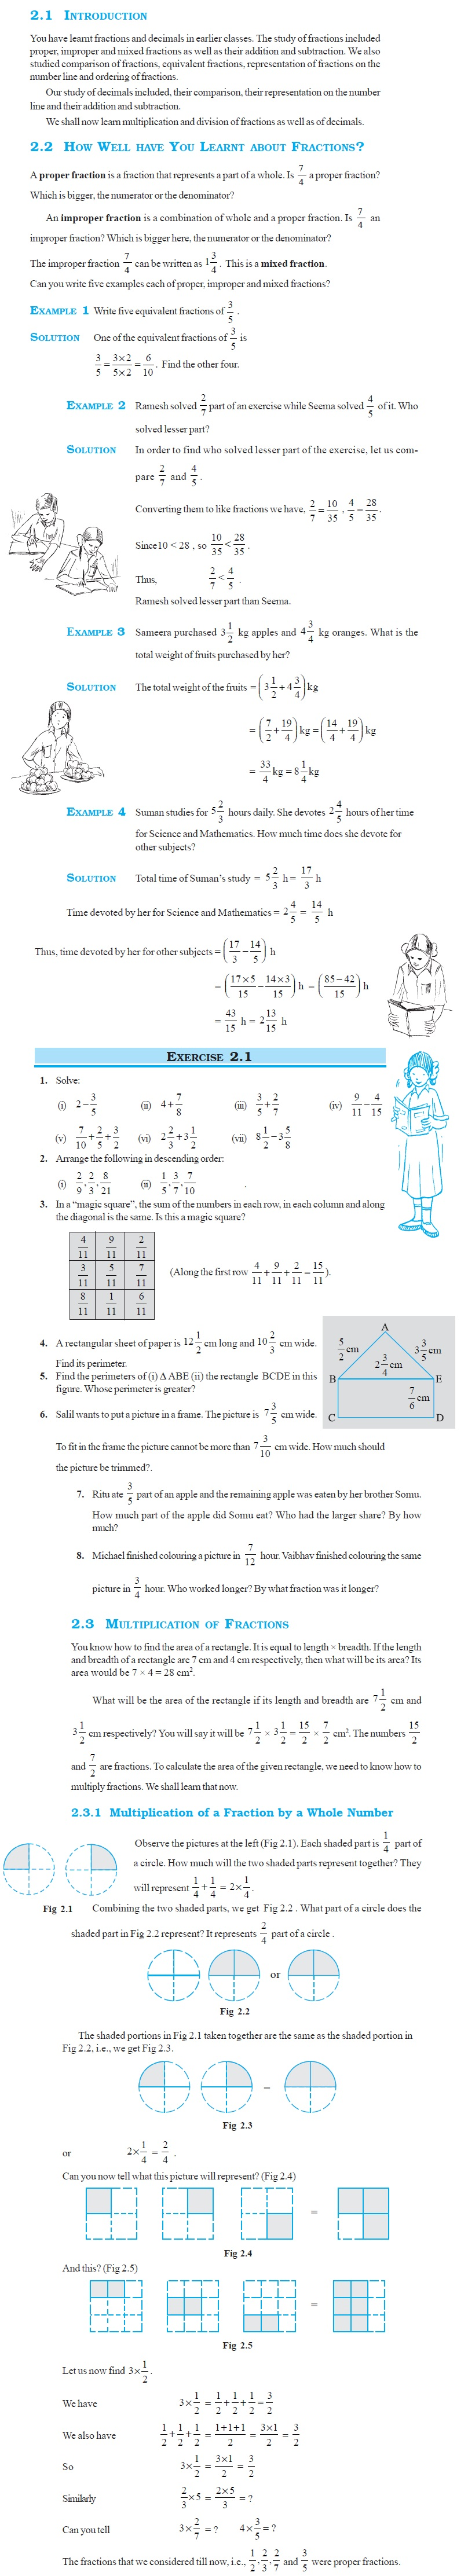 NCERT Class VII Maths Chapter 2 Fractions and Decimals